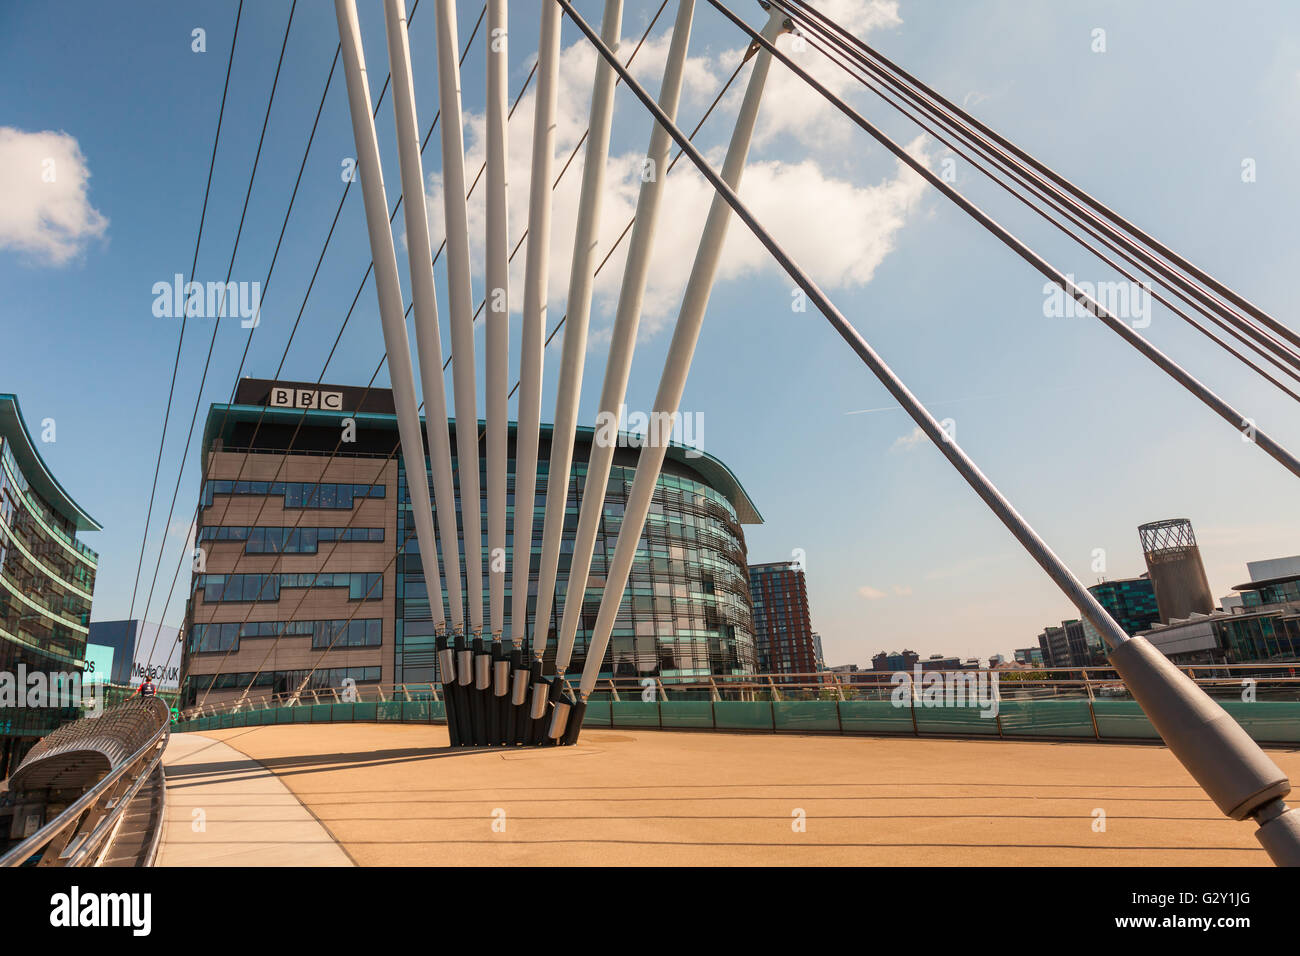 The Media City Footbridge is a swing-mechanism asymmetric cable-stayed bridge over the Manchester Ship Canal near - Stock Image